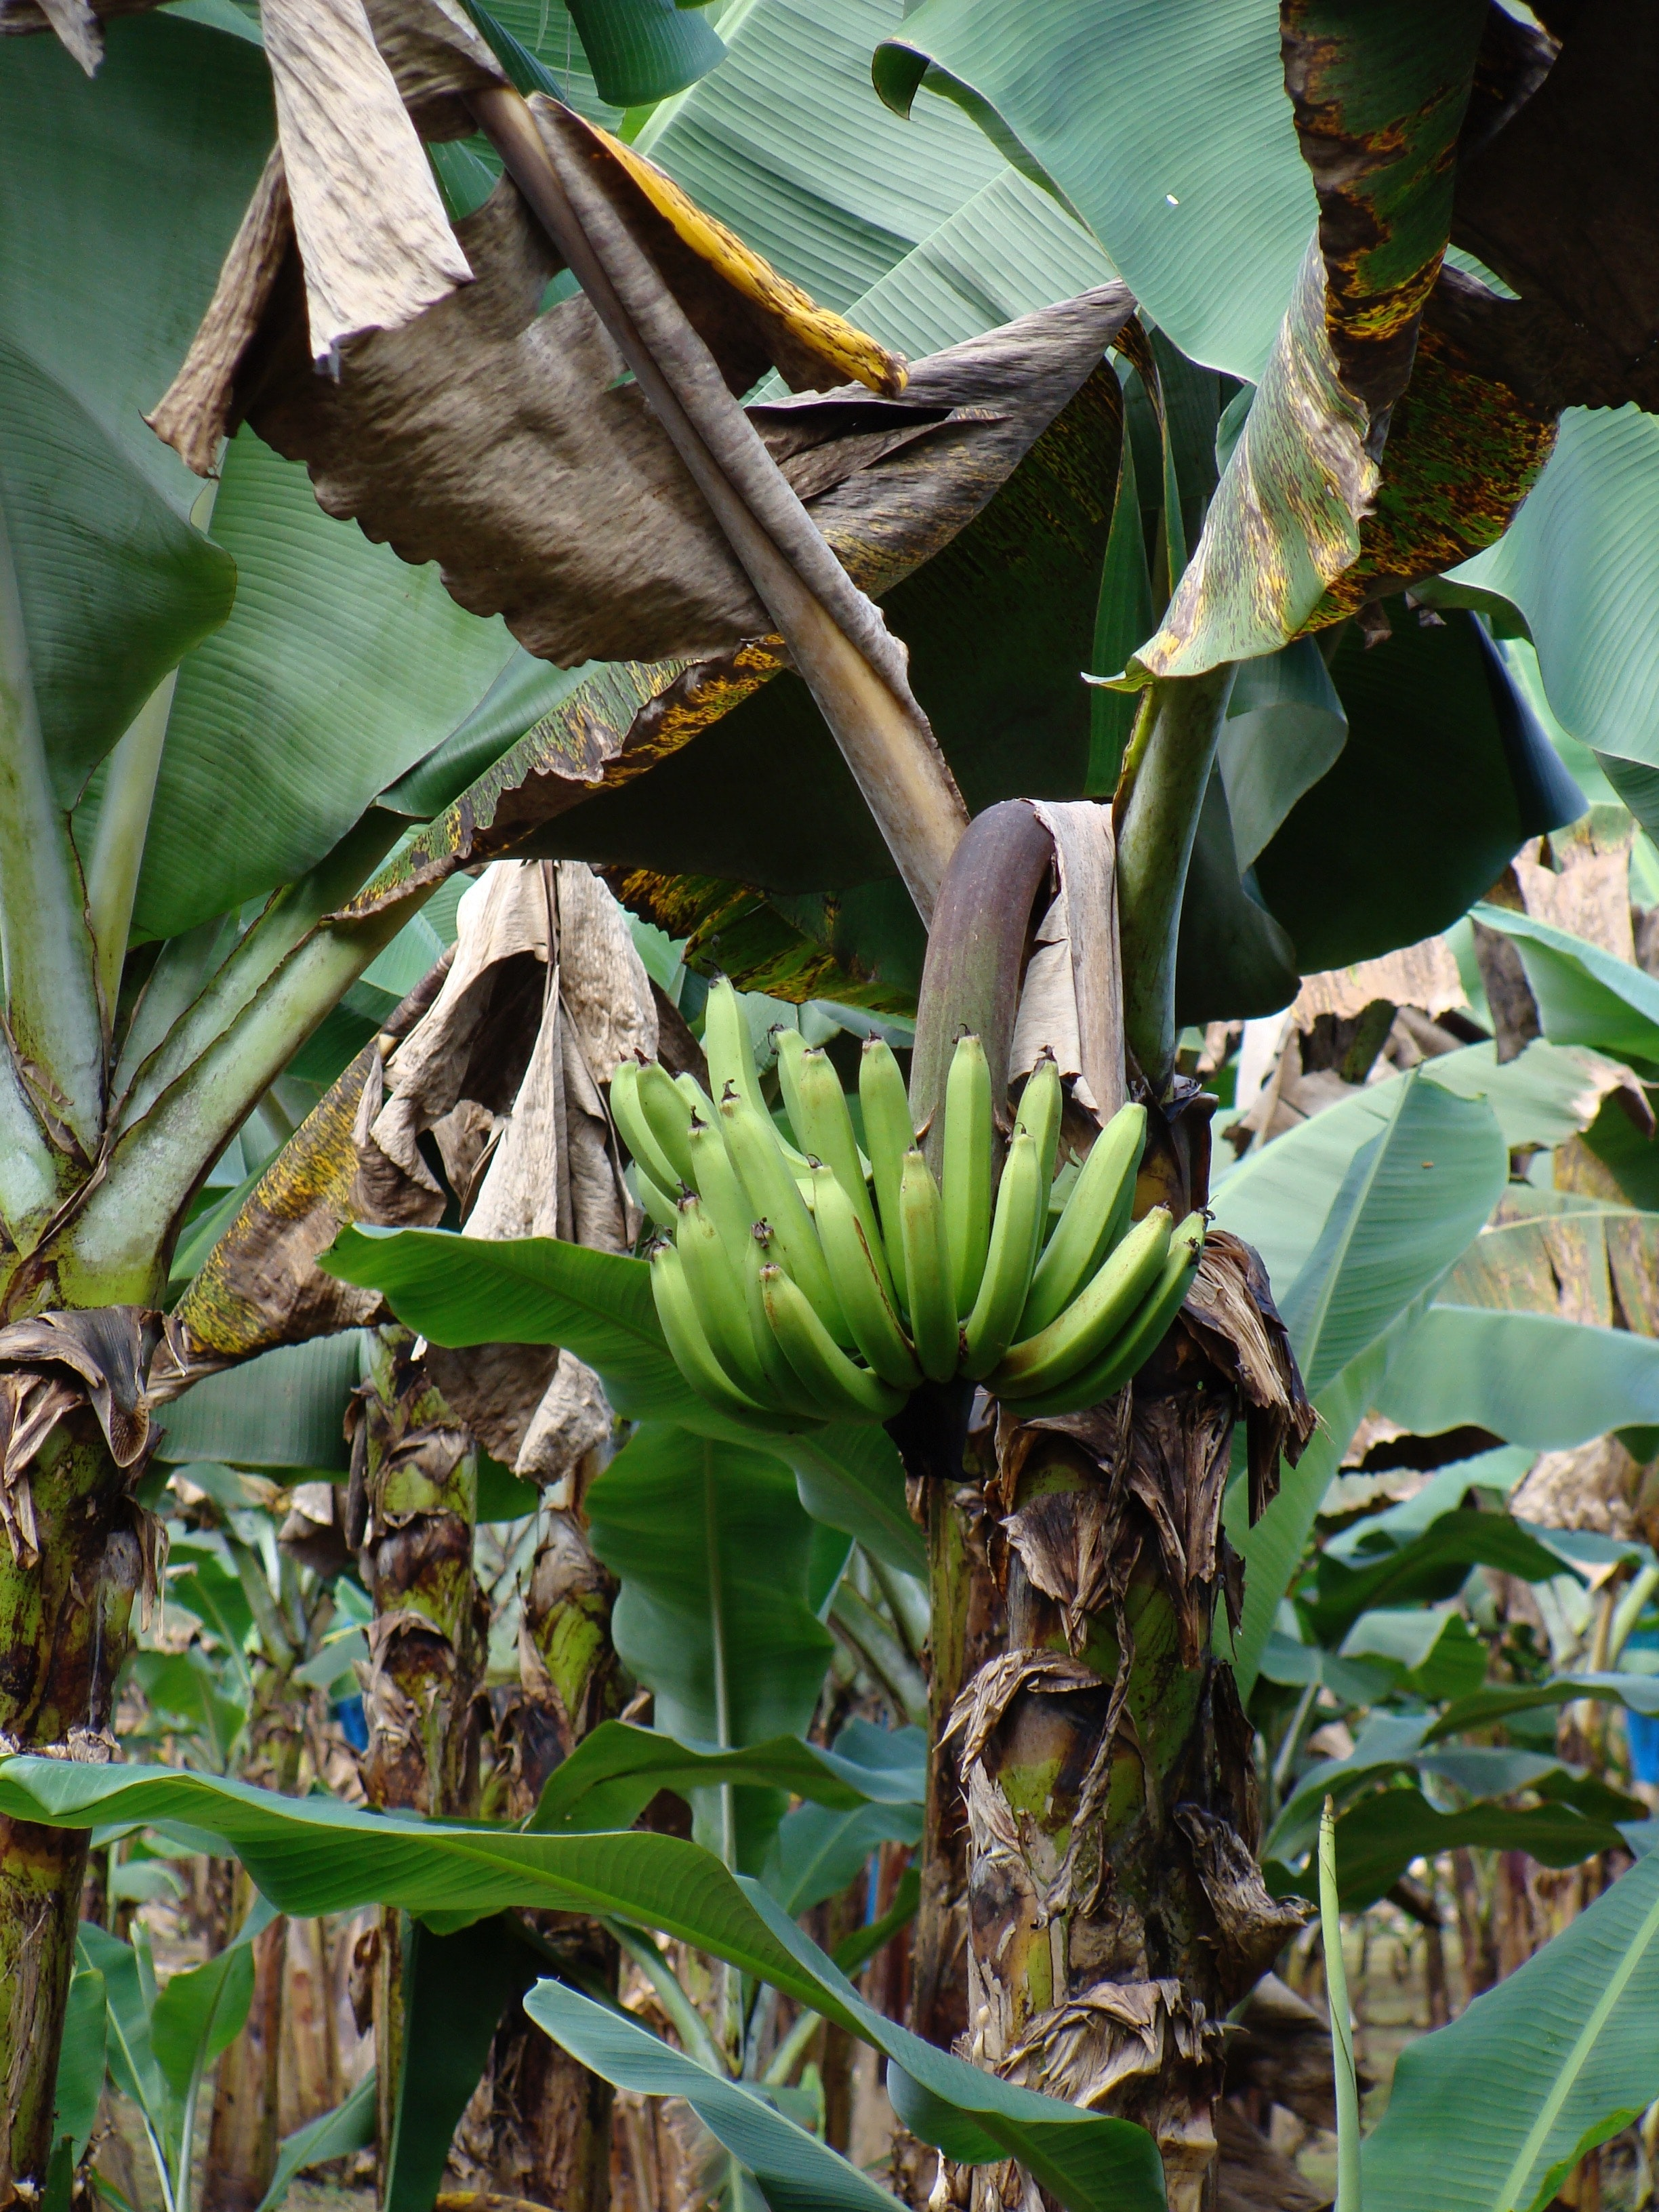 Benefits of producing banana plants asexually